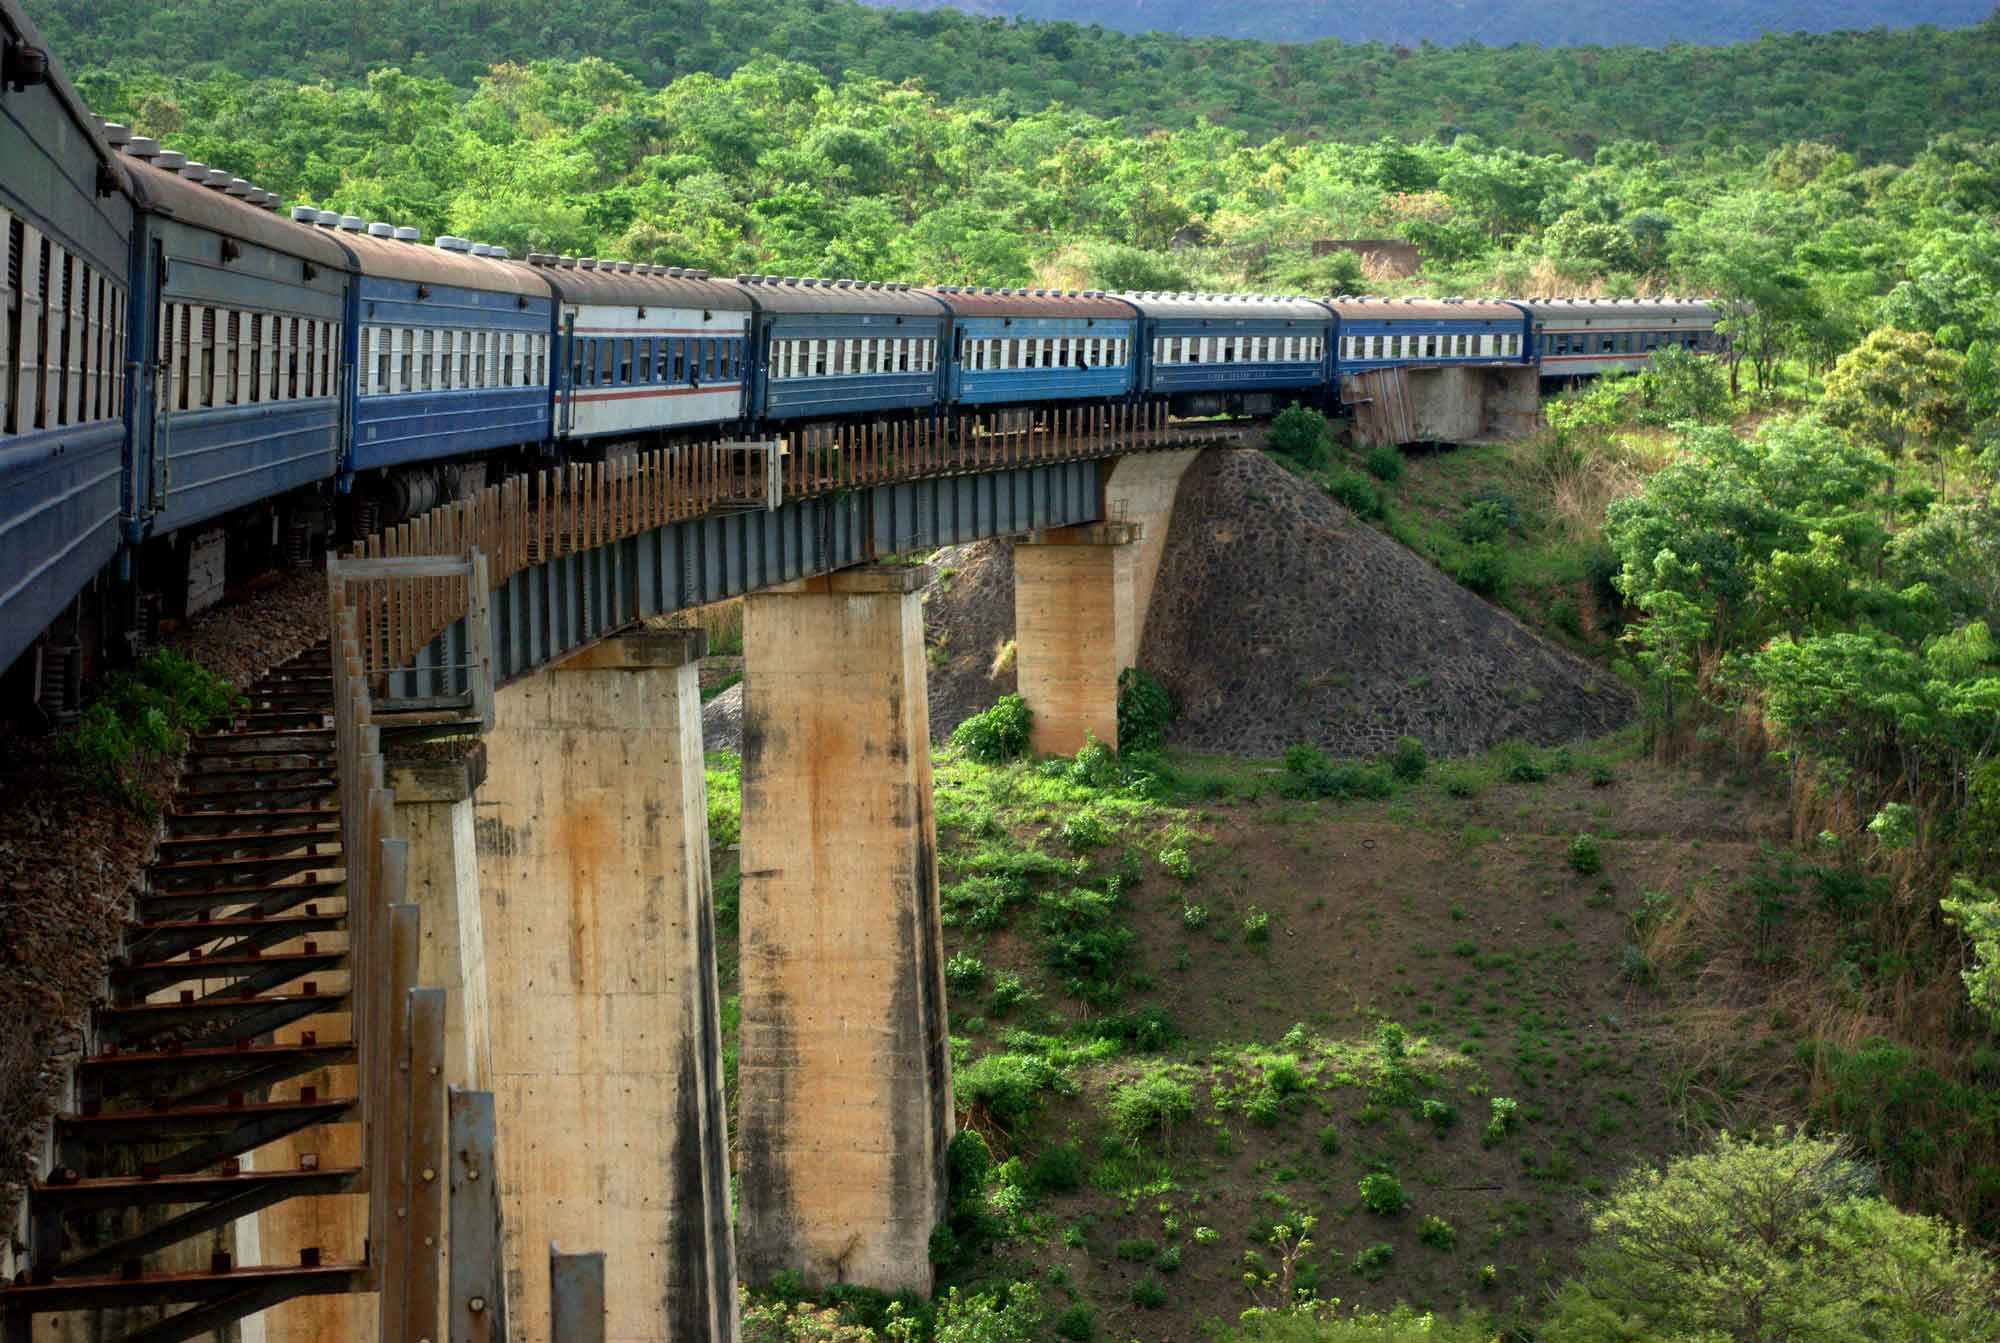 The first Chinese-backed railway, Tazara Rail (pictured above), was funded in the 1970s. Now China has agreed to help Tanzania build a new 2,561km railway worth USD 7 billion that will run between the Tanzanian port of Dar es Salaam and the Great Lakes states of Rwanda and Burundi.